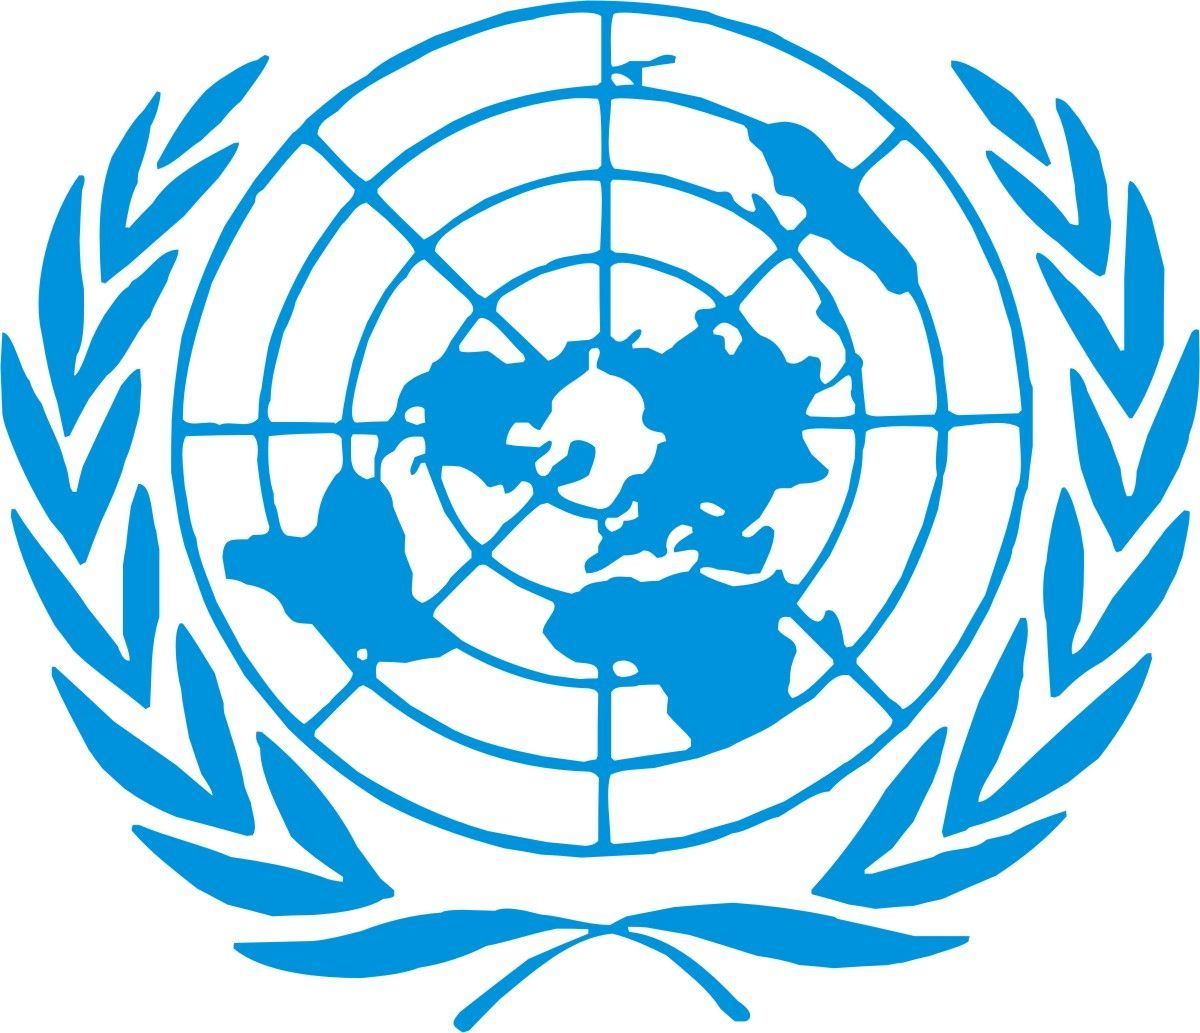 united nations logo vector wwwpixsharkcom images